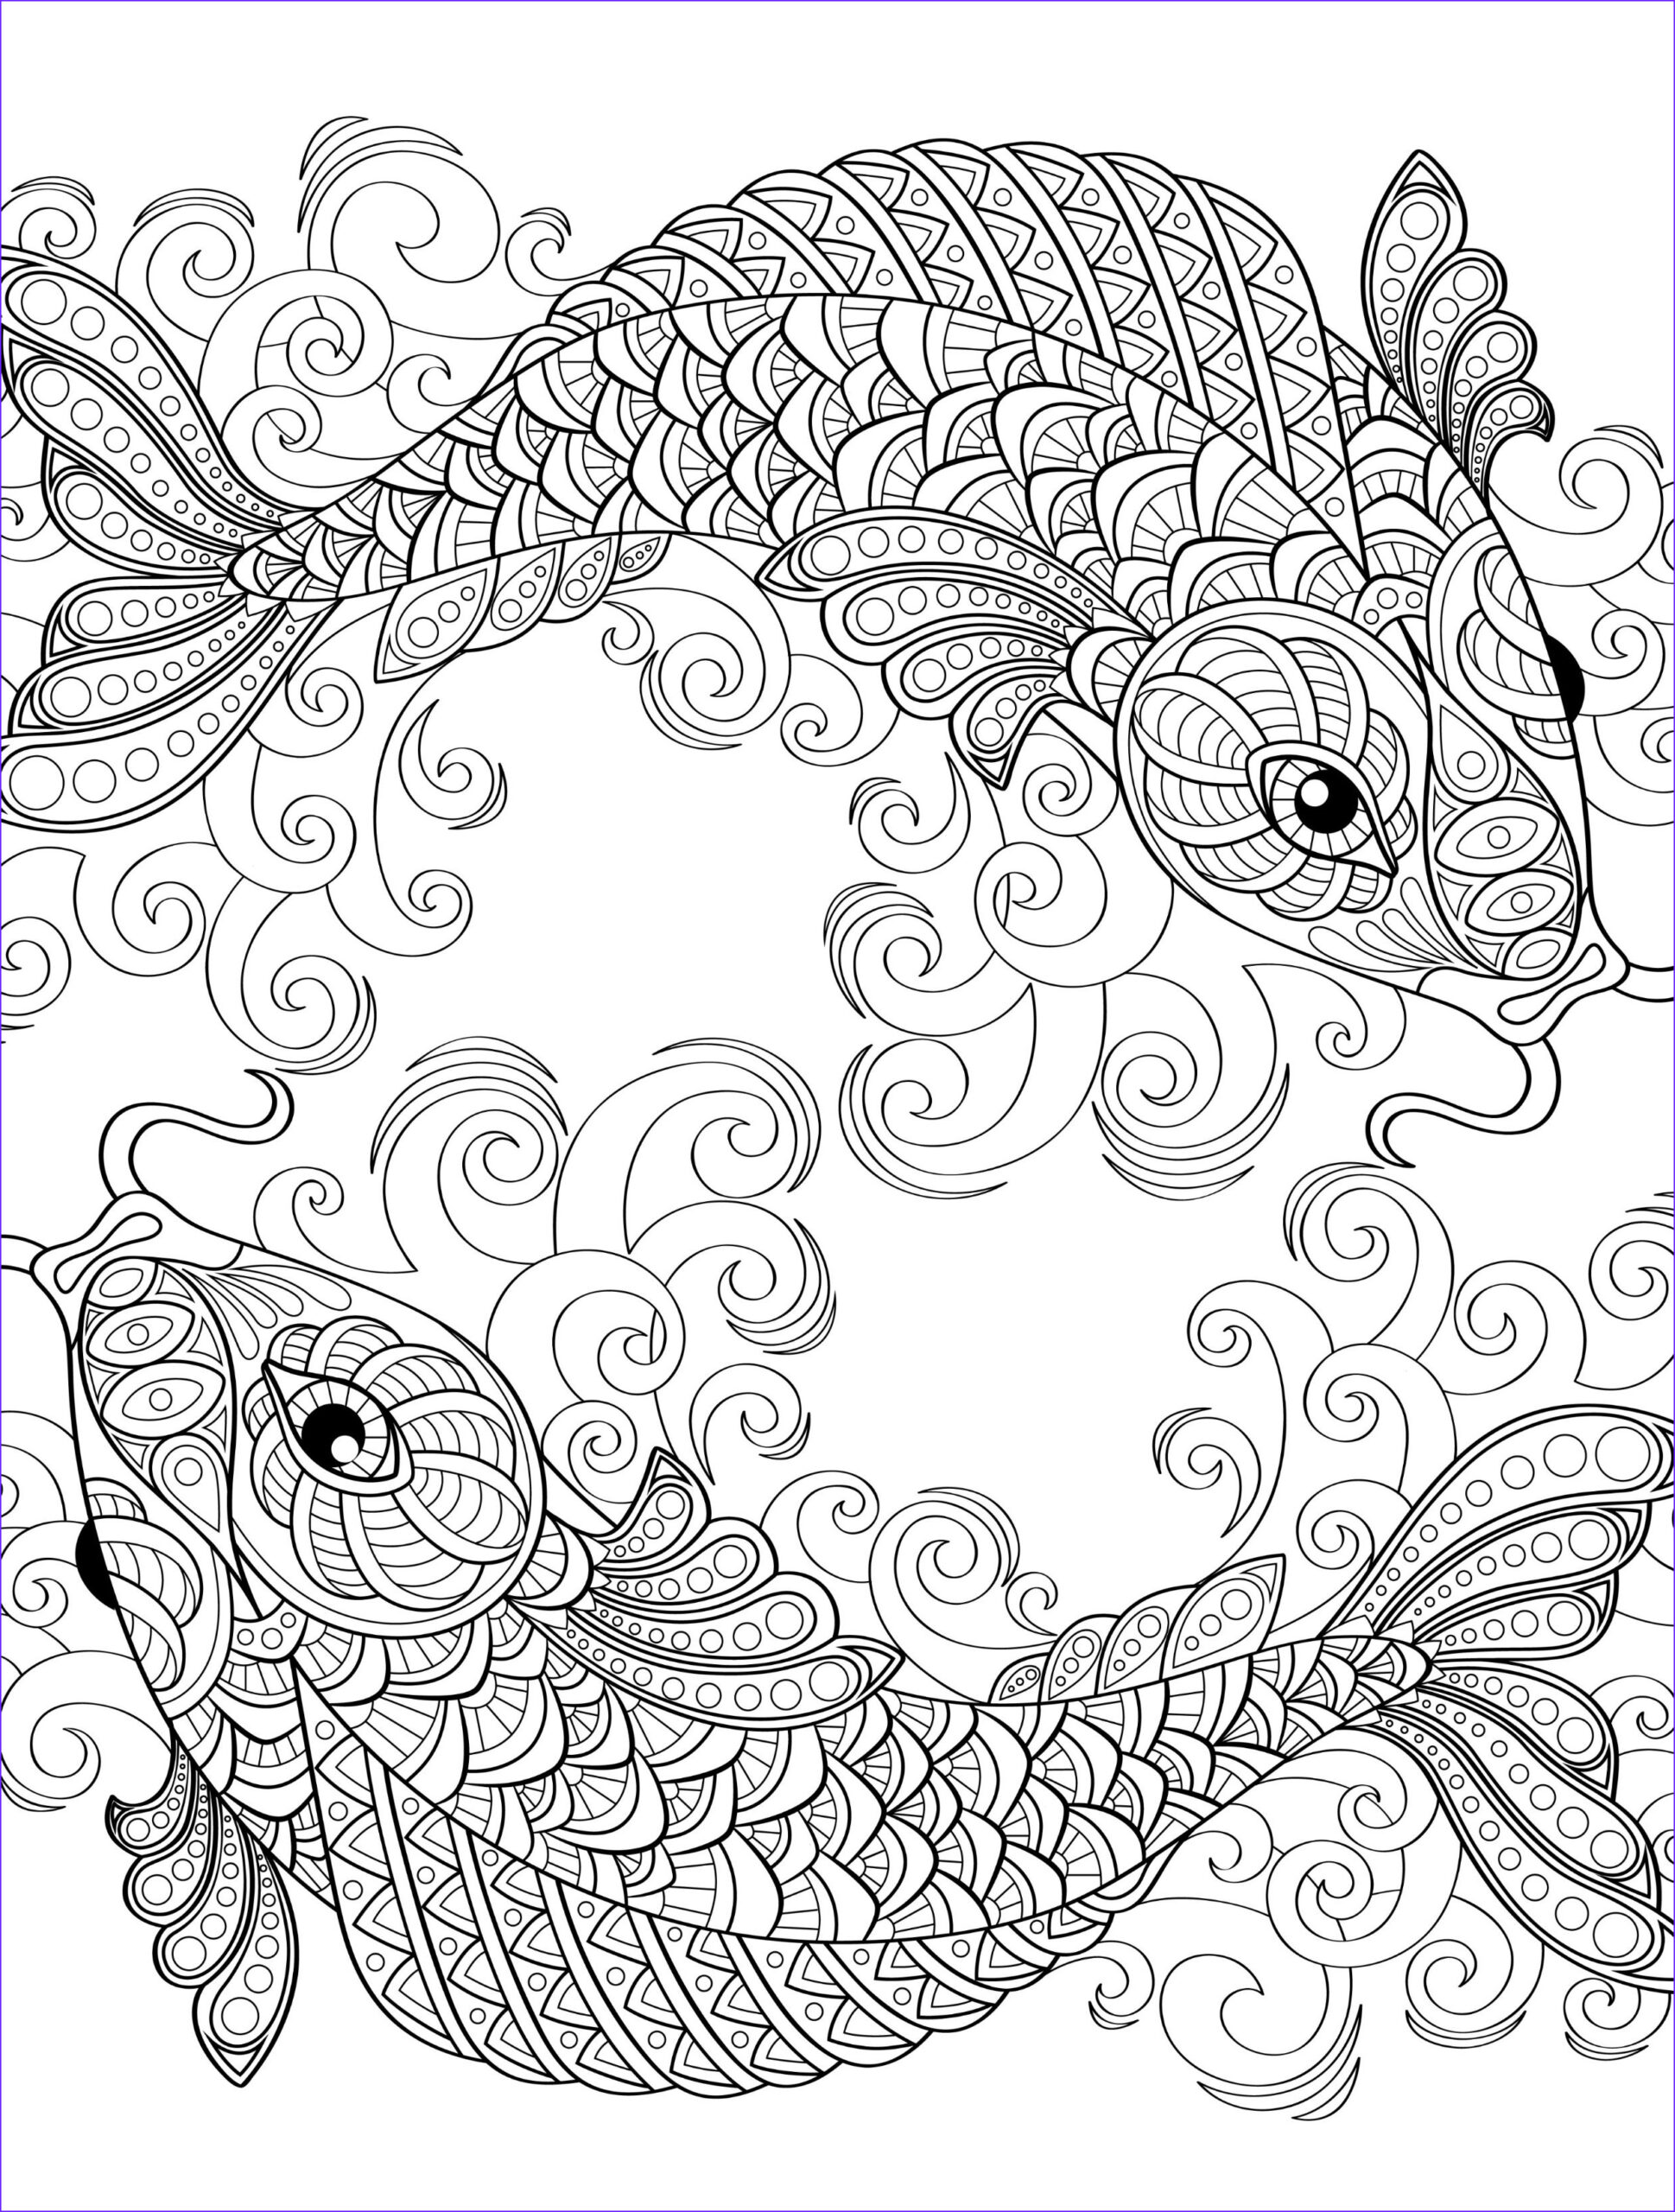 Coloring Pages to Print for Adults Best Of Gallery 18 Absurdly Whimsical Adult Coloring Pages